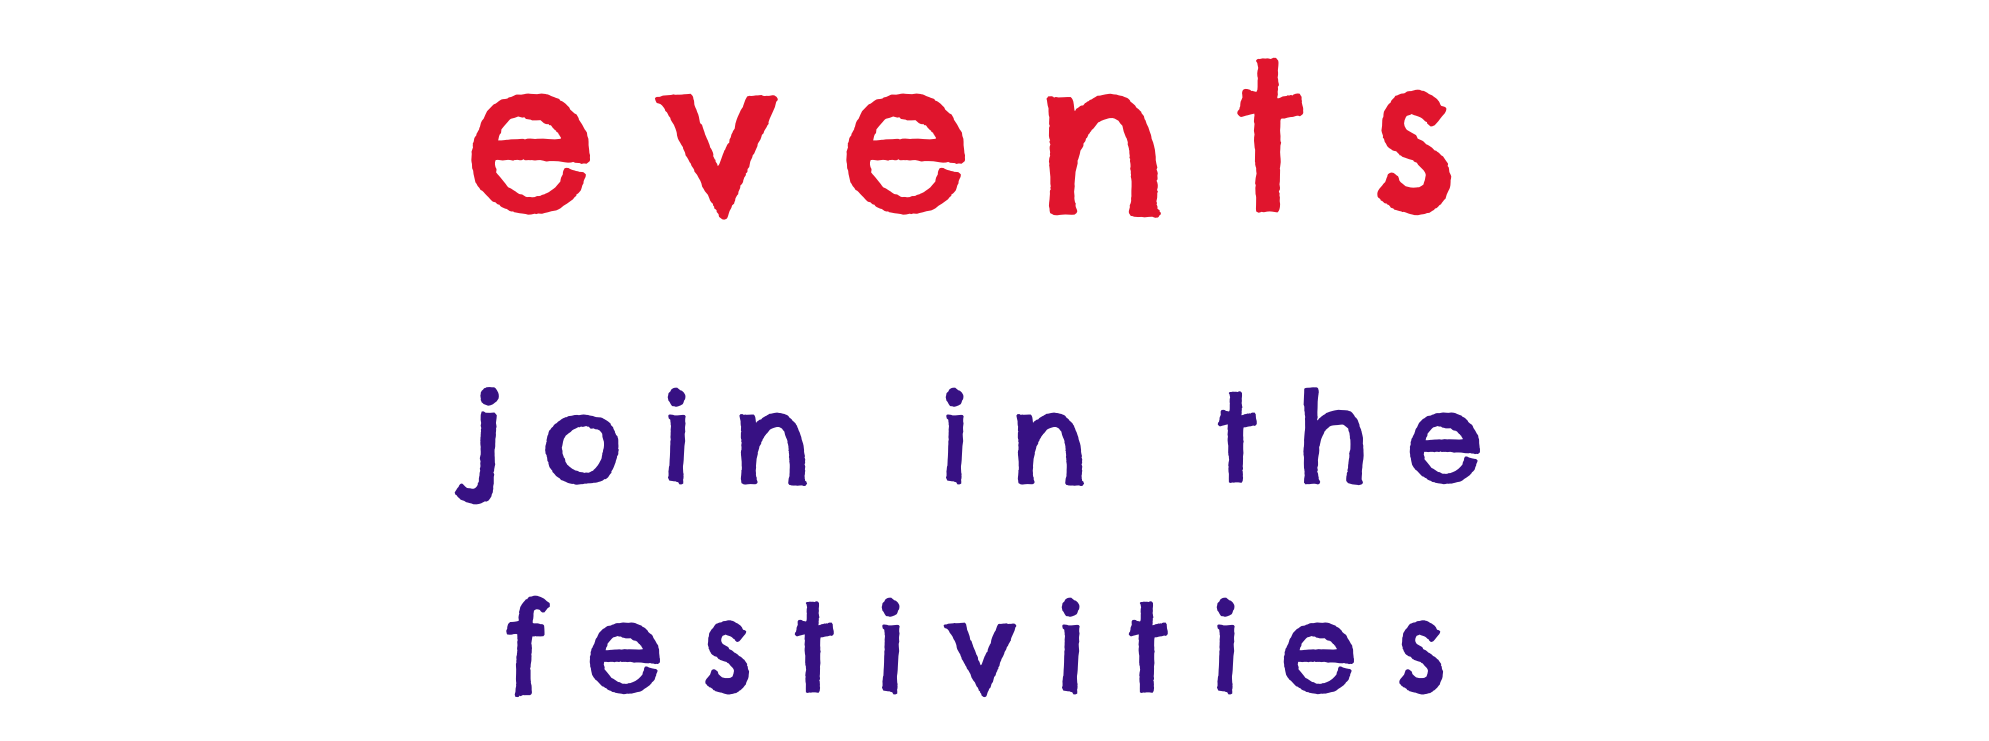 events-list-title.png